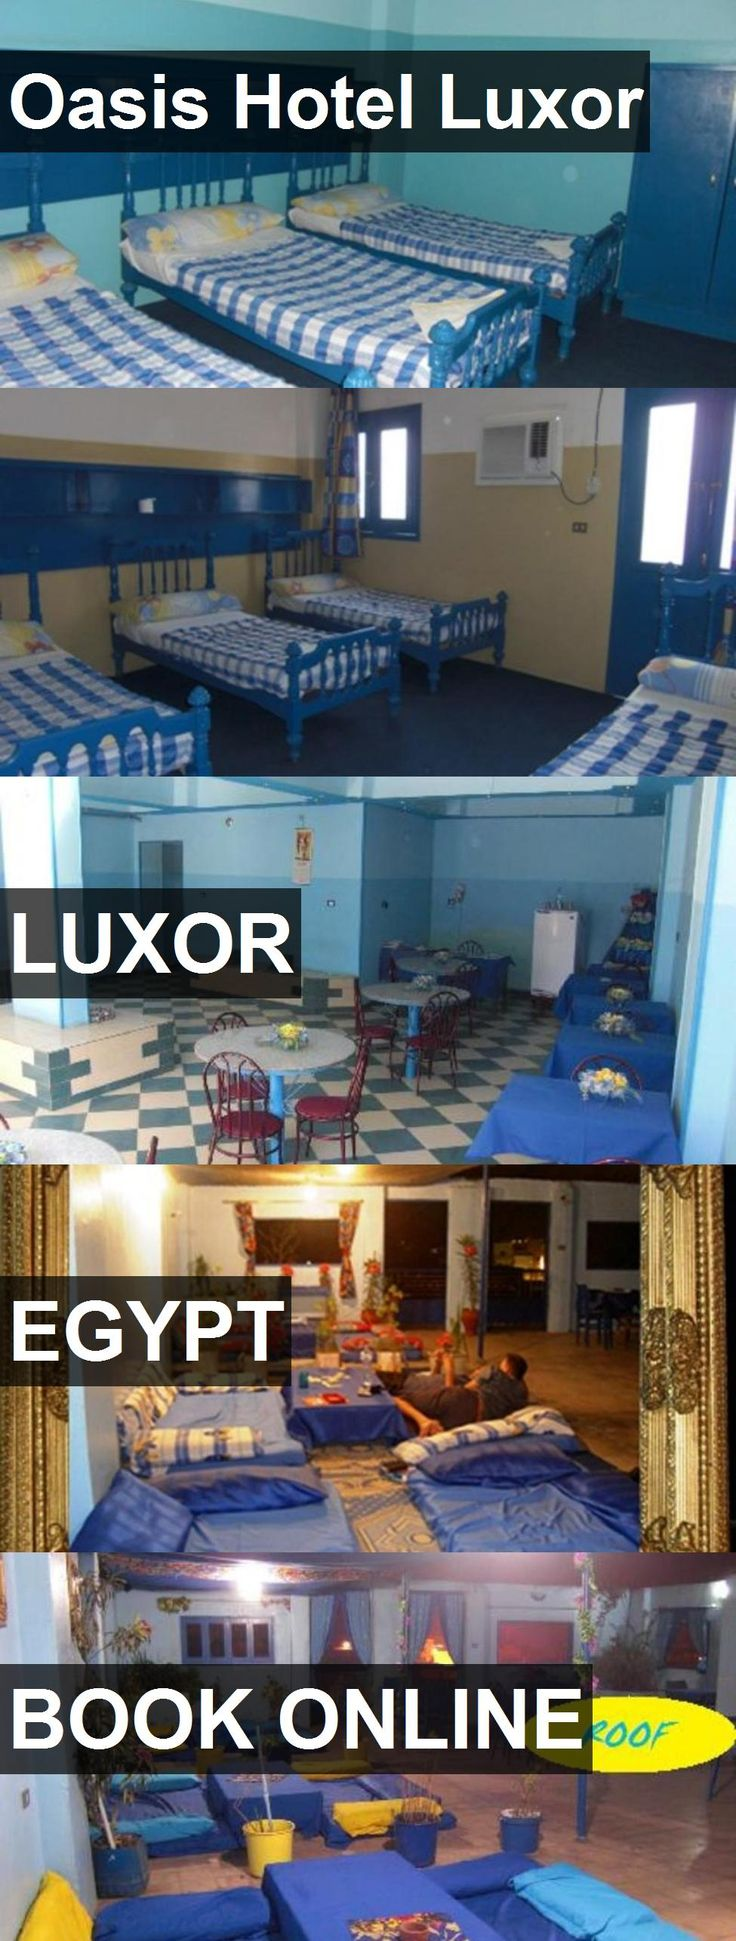 Oasis Hotel Luxor in Luxor, Egypt. For more information, photos, reviews and best prices please follow the link. #Egypt #Luxor #travel #vacation #hotel